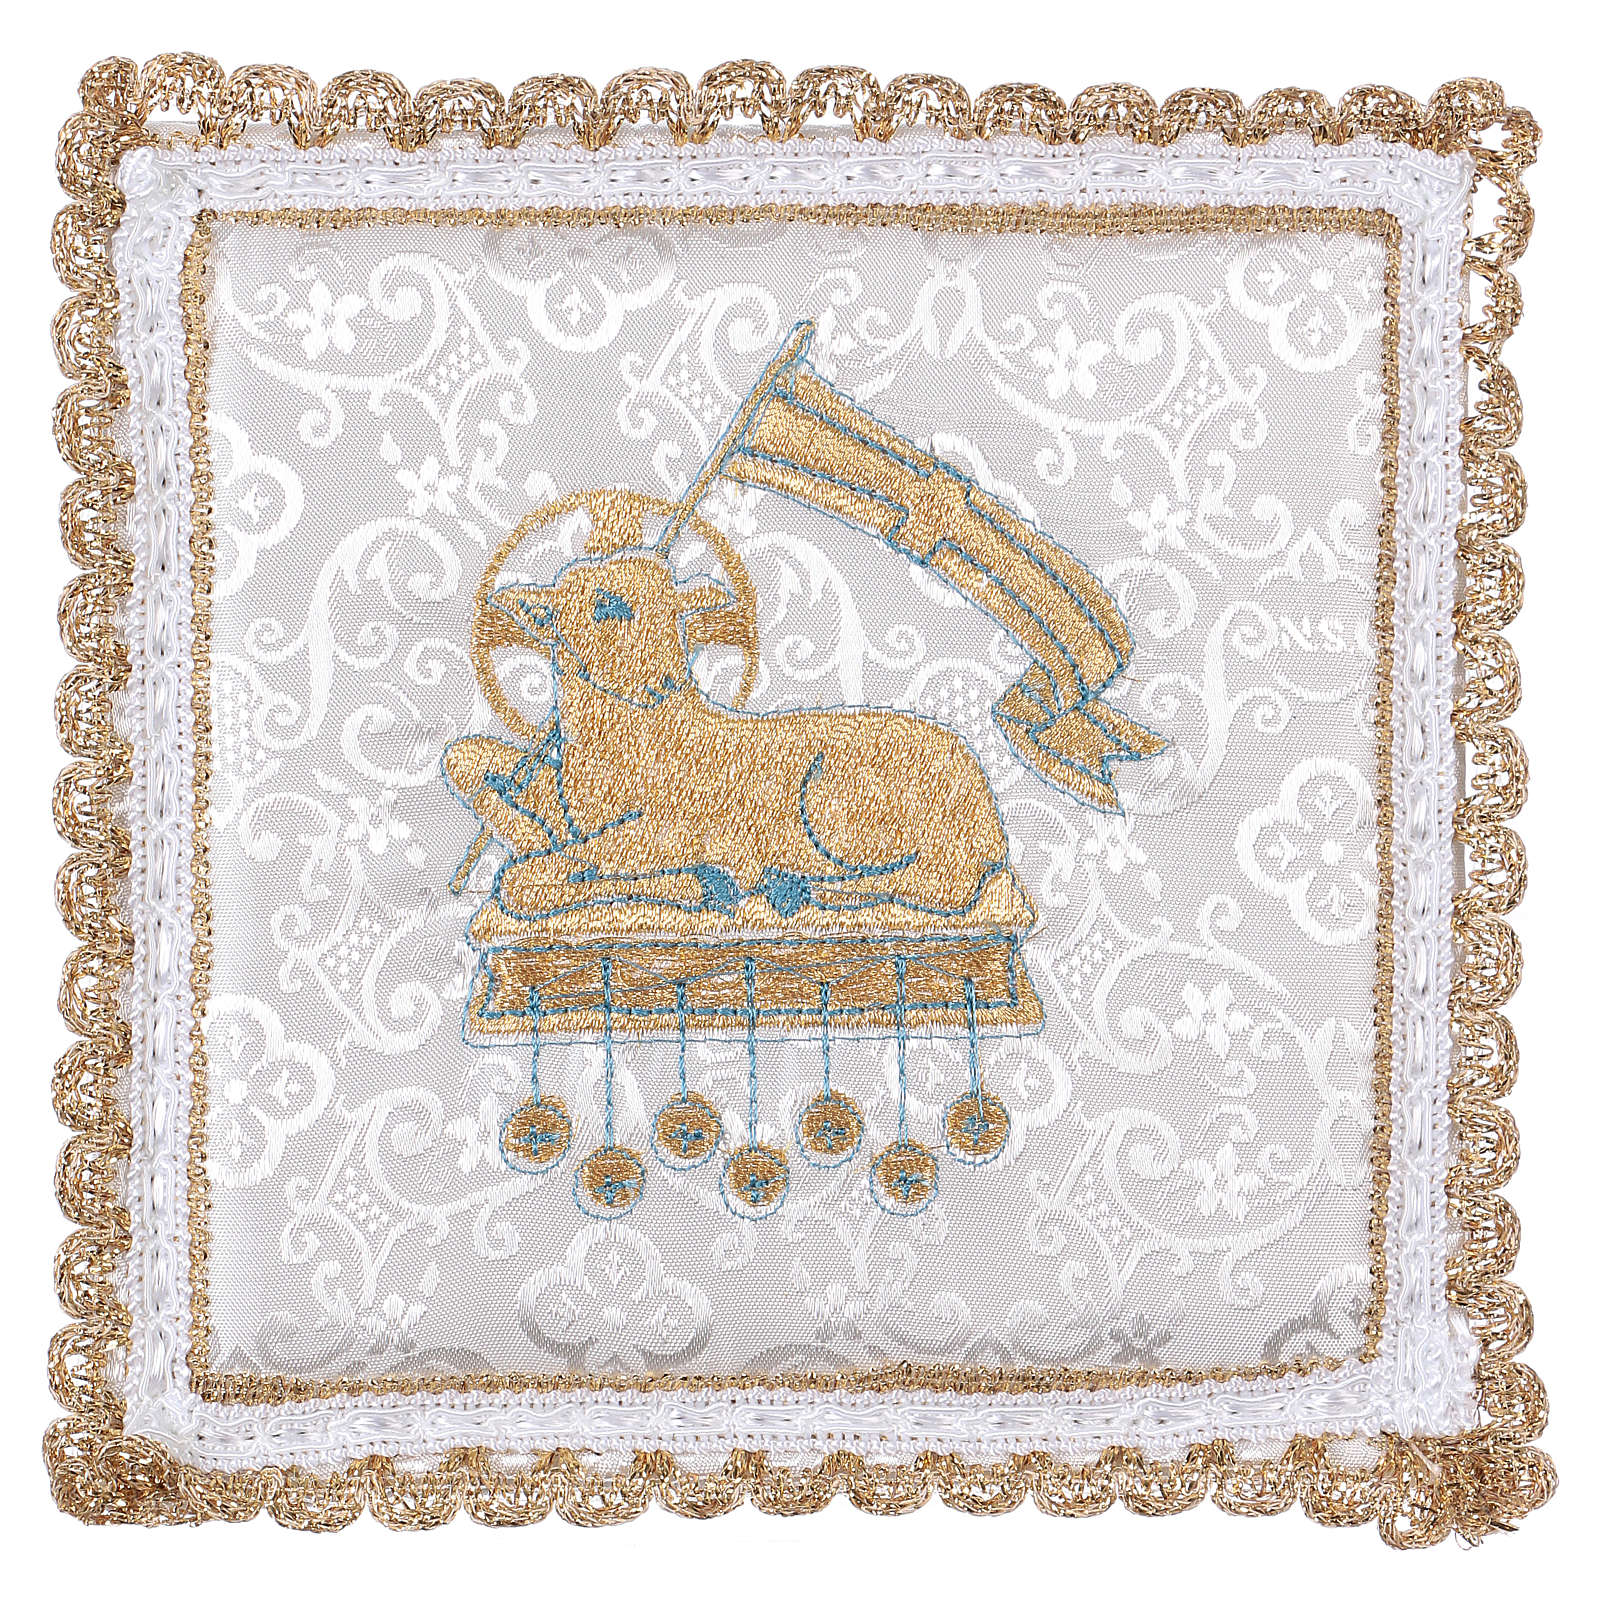 Chalice veil (pall) with lamb embroidery on white damask fabric 4